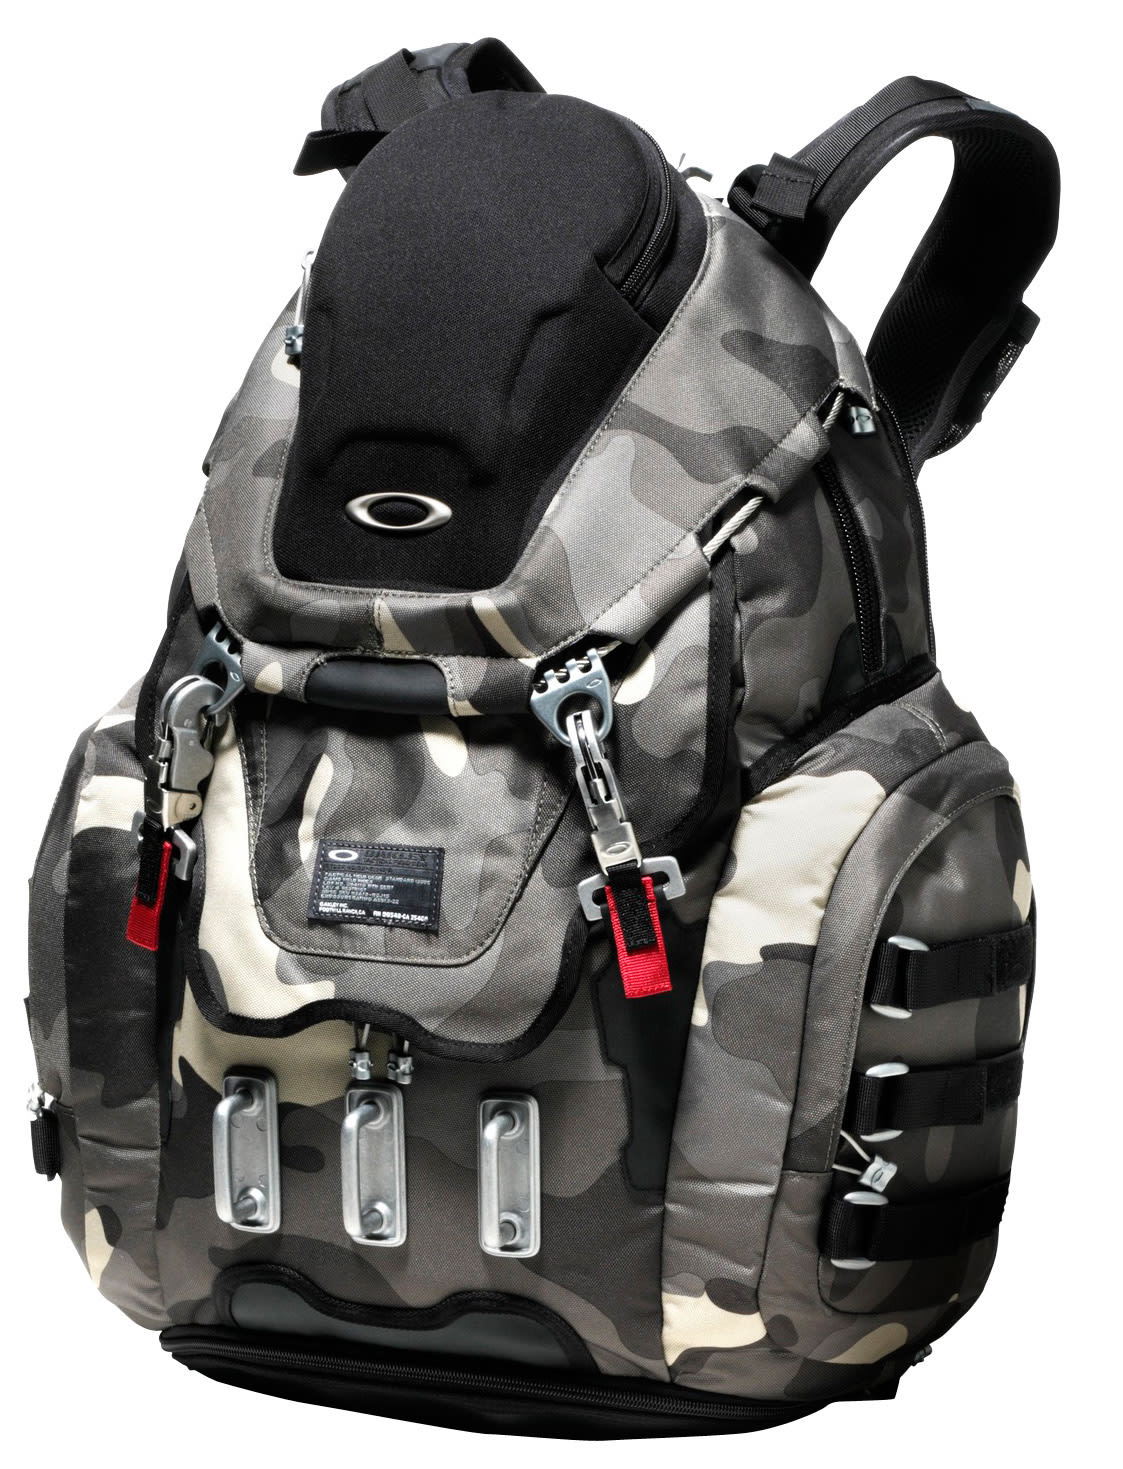 oakley kitchen sink backpack review on oakley kitchen sink backpack up to 55 7138